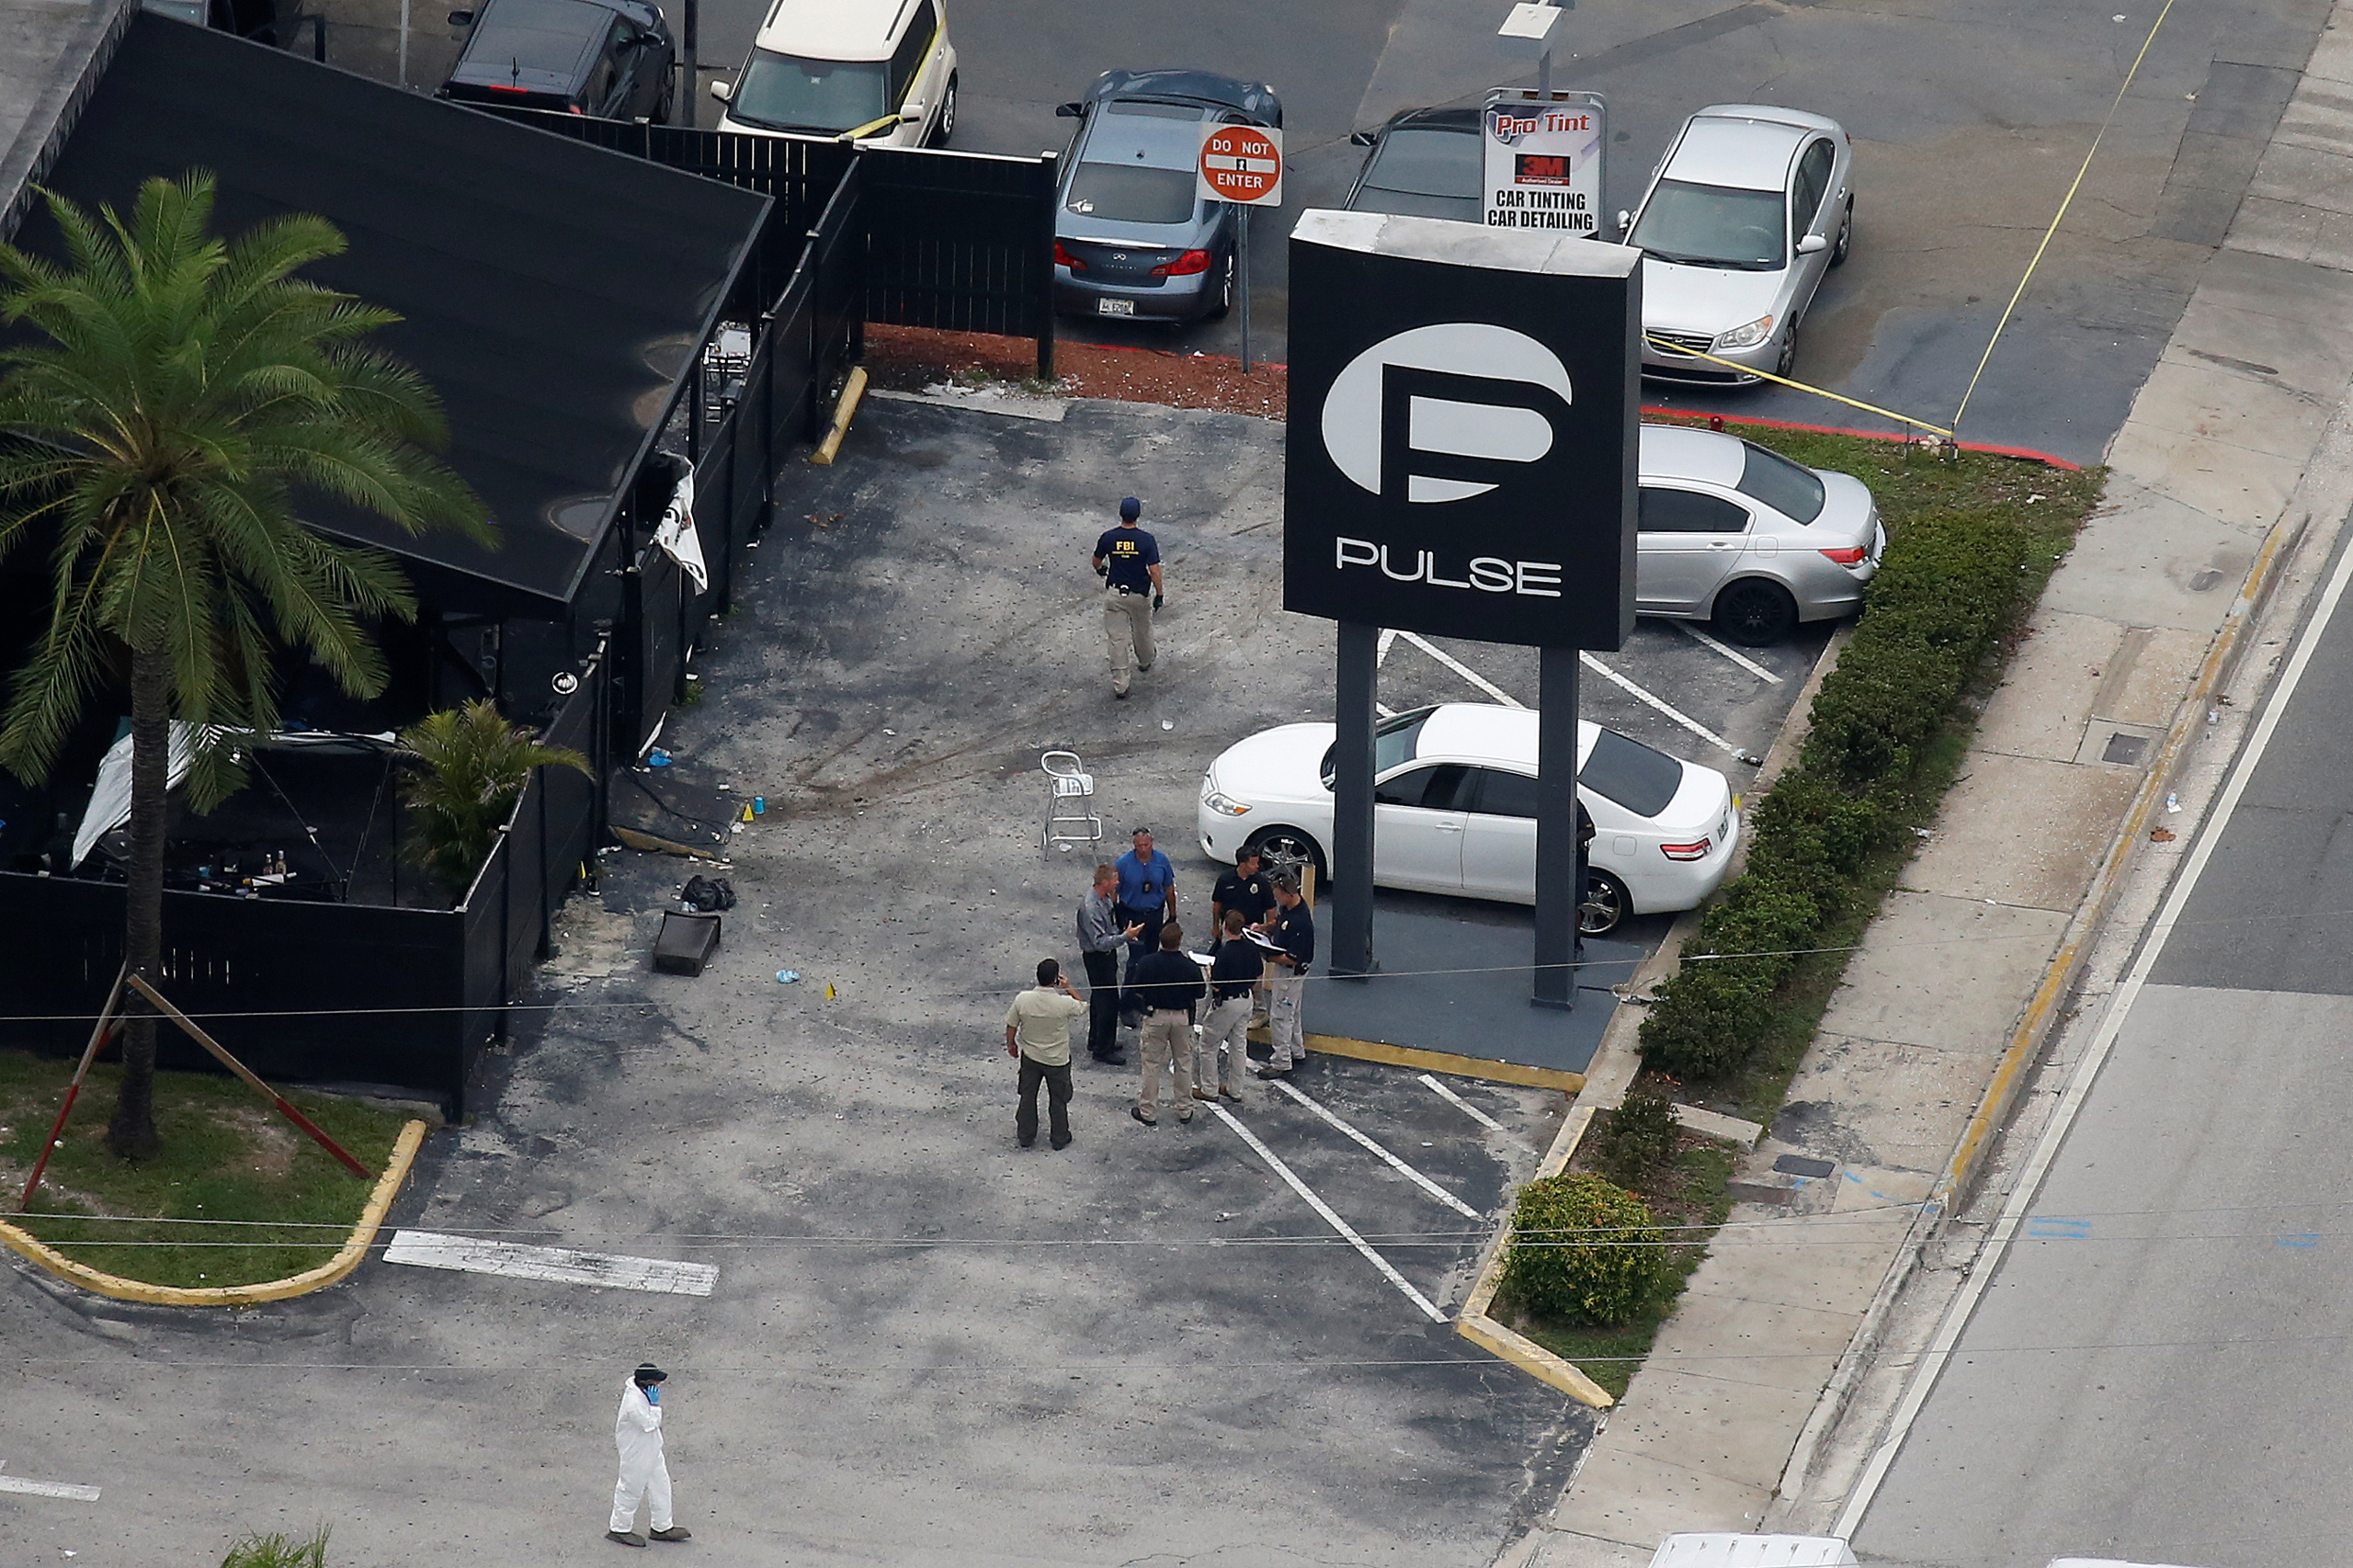 Investigators work the scene following a mass shooting at the Pulse gay nightclub in Orlando, Fla., on June 12, 2016.